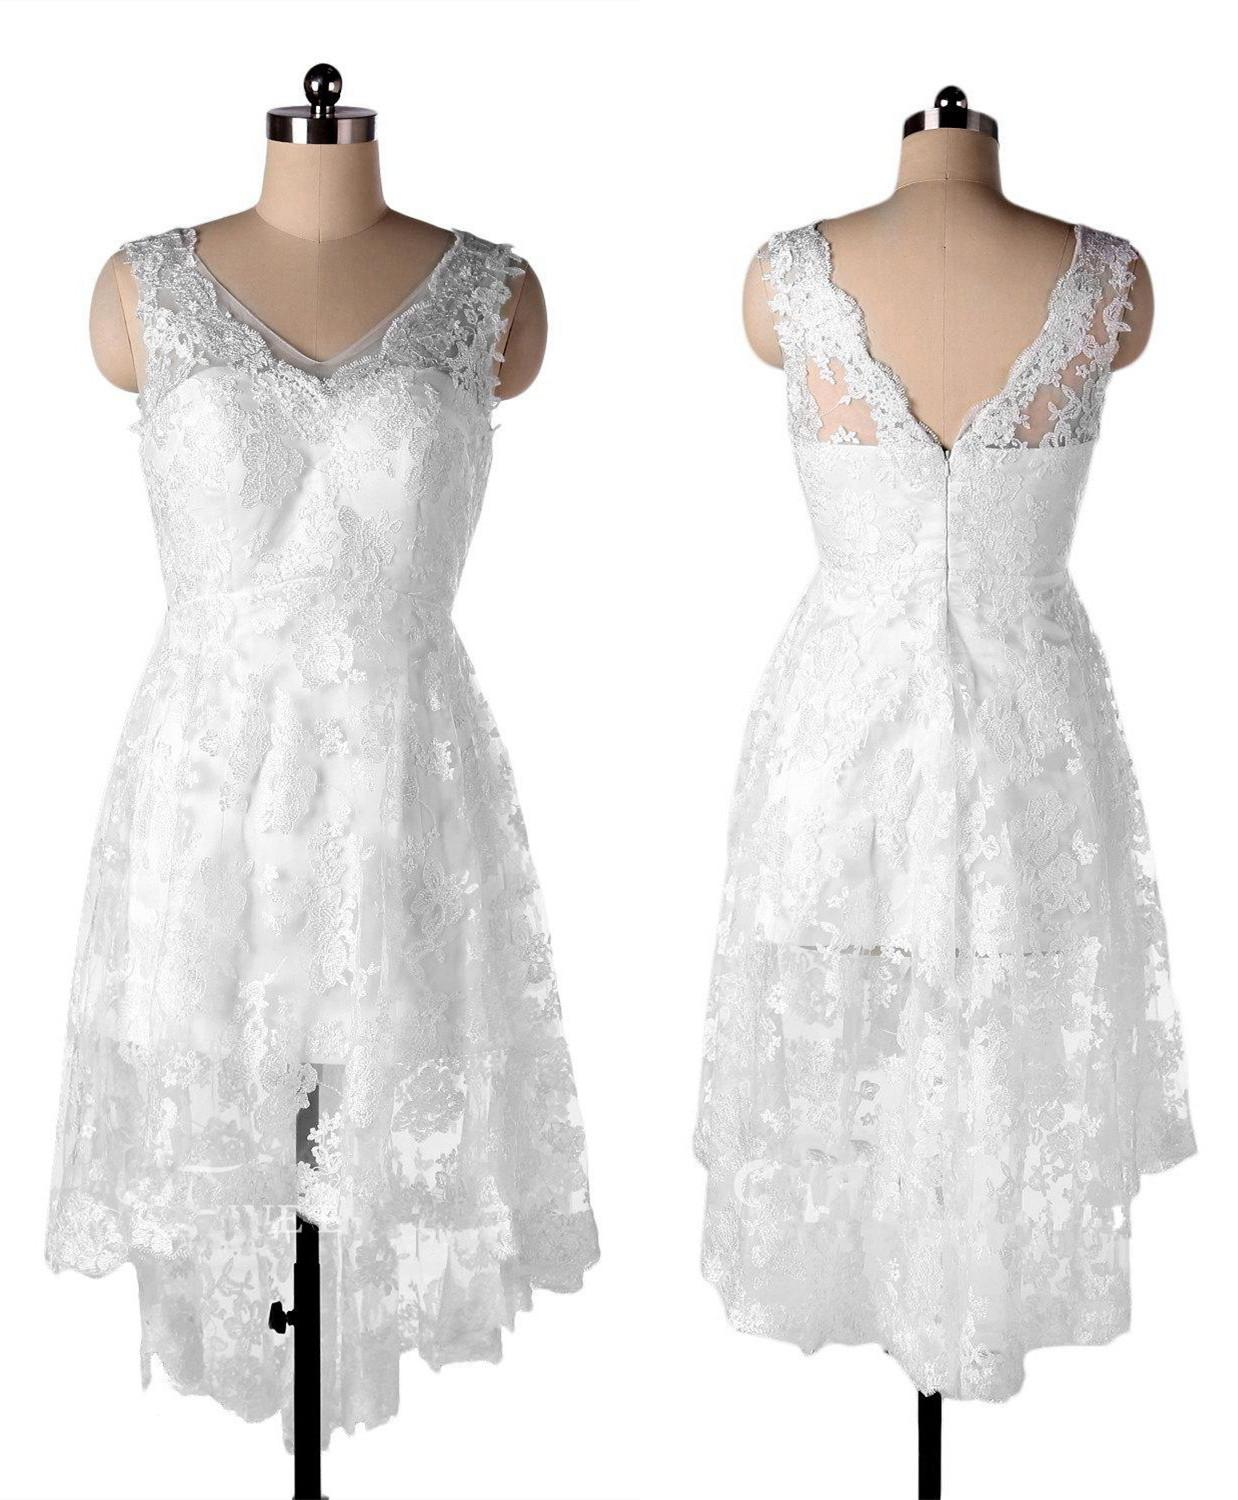 V Neck Simple Short High Low Wedding Dress With Appliques Lace Summer Beach Country Bridal Dress Gown